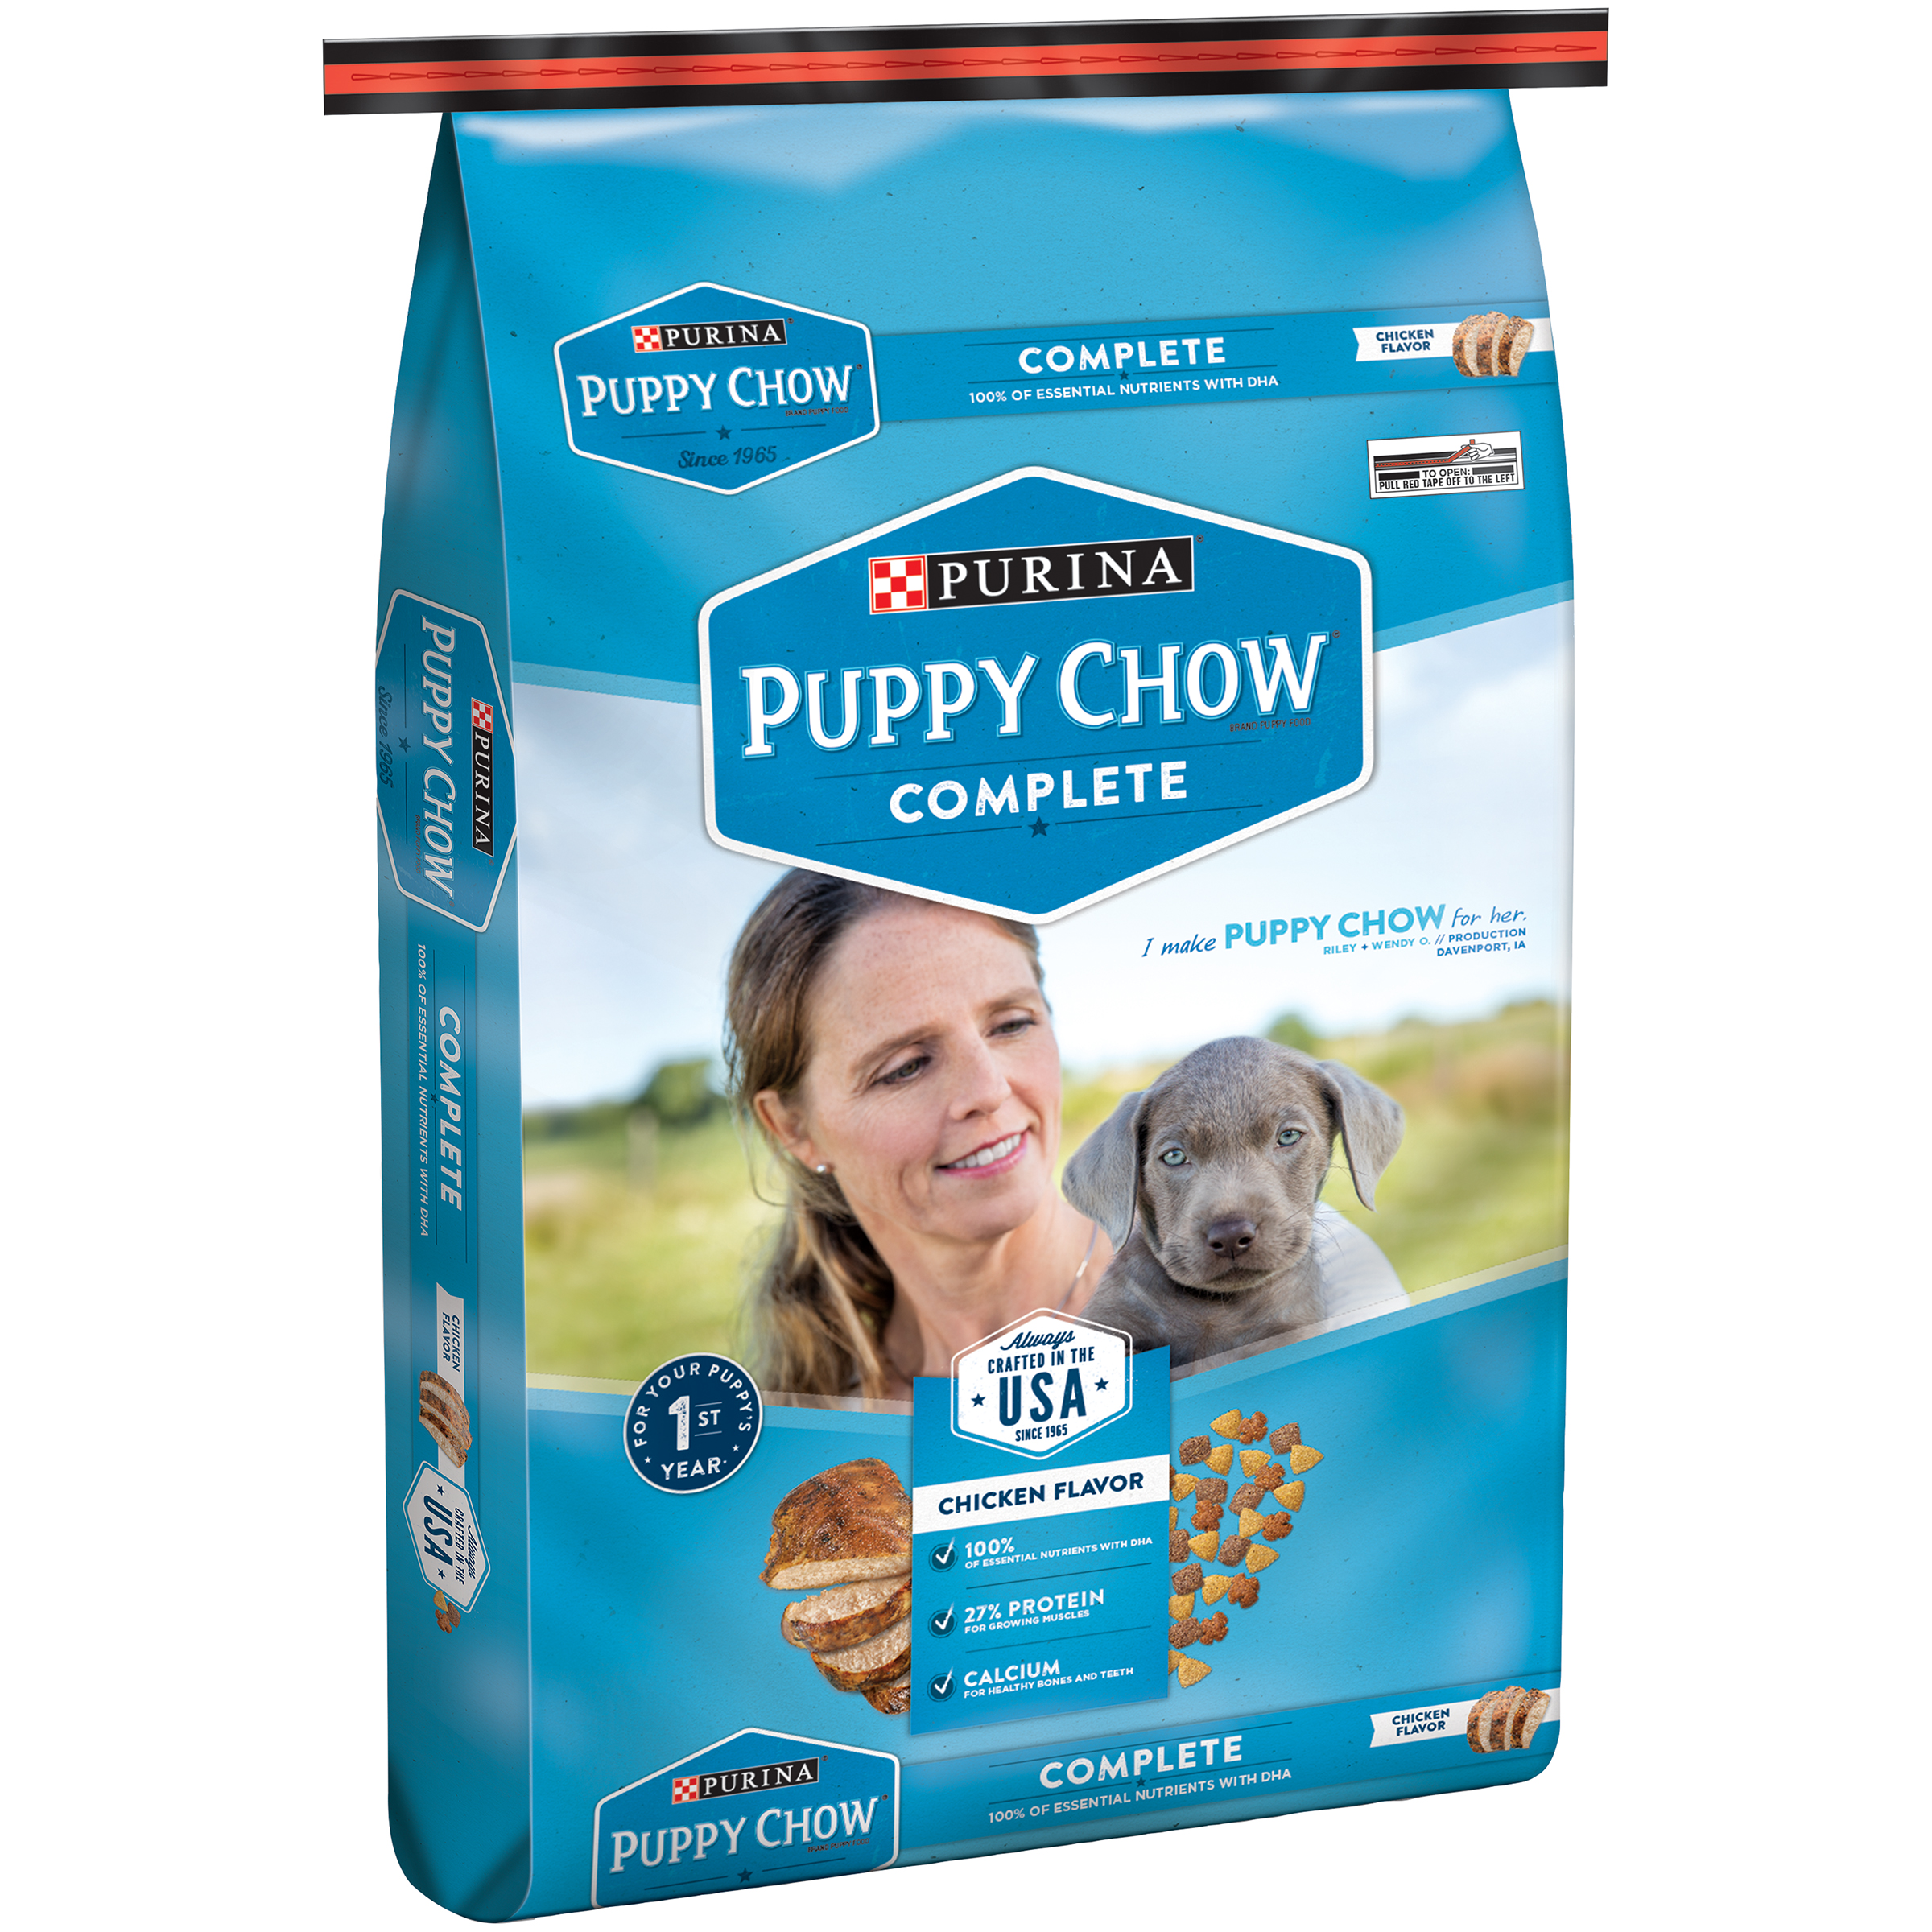 Purina Puppy Chow Complete Puppy Food 16.5 lb. Bag by Nestlé Purina PetCare Company